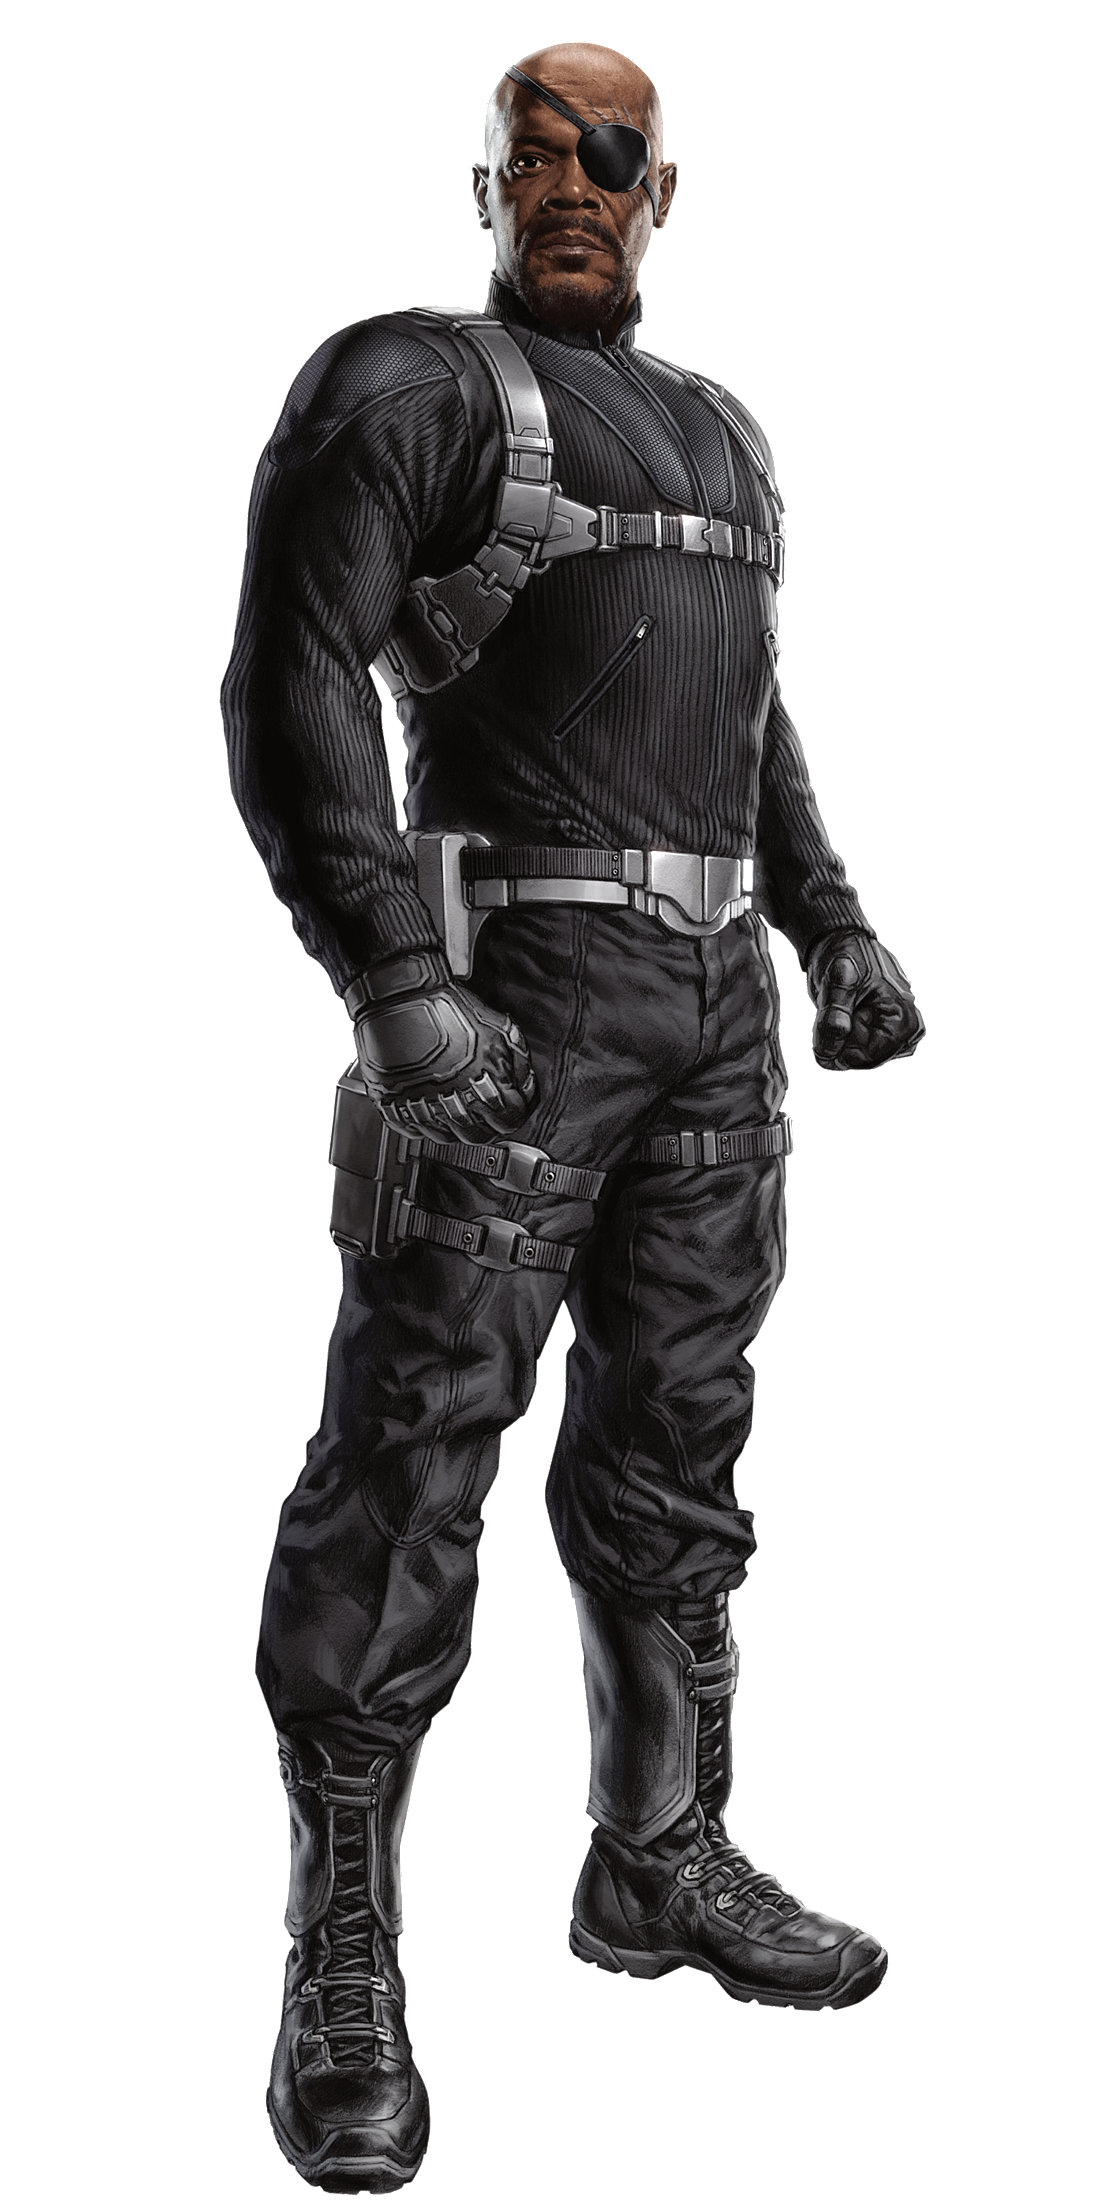 Free Nick Fury From Avengers Coloring Pages: Image - NickFury2-Avengers.png